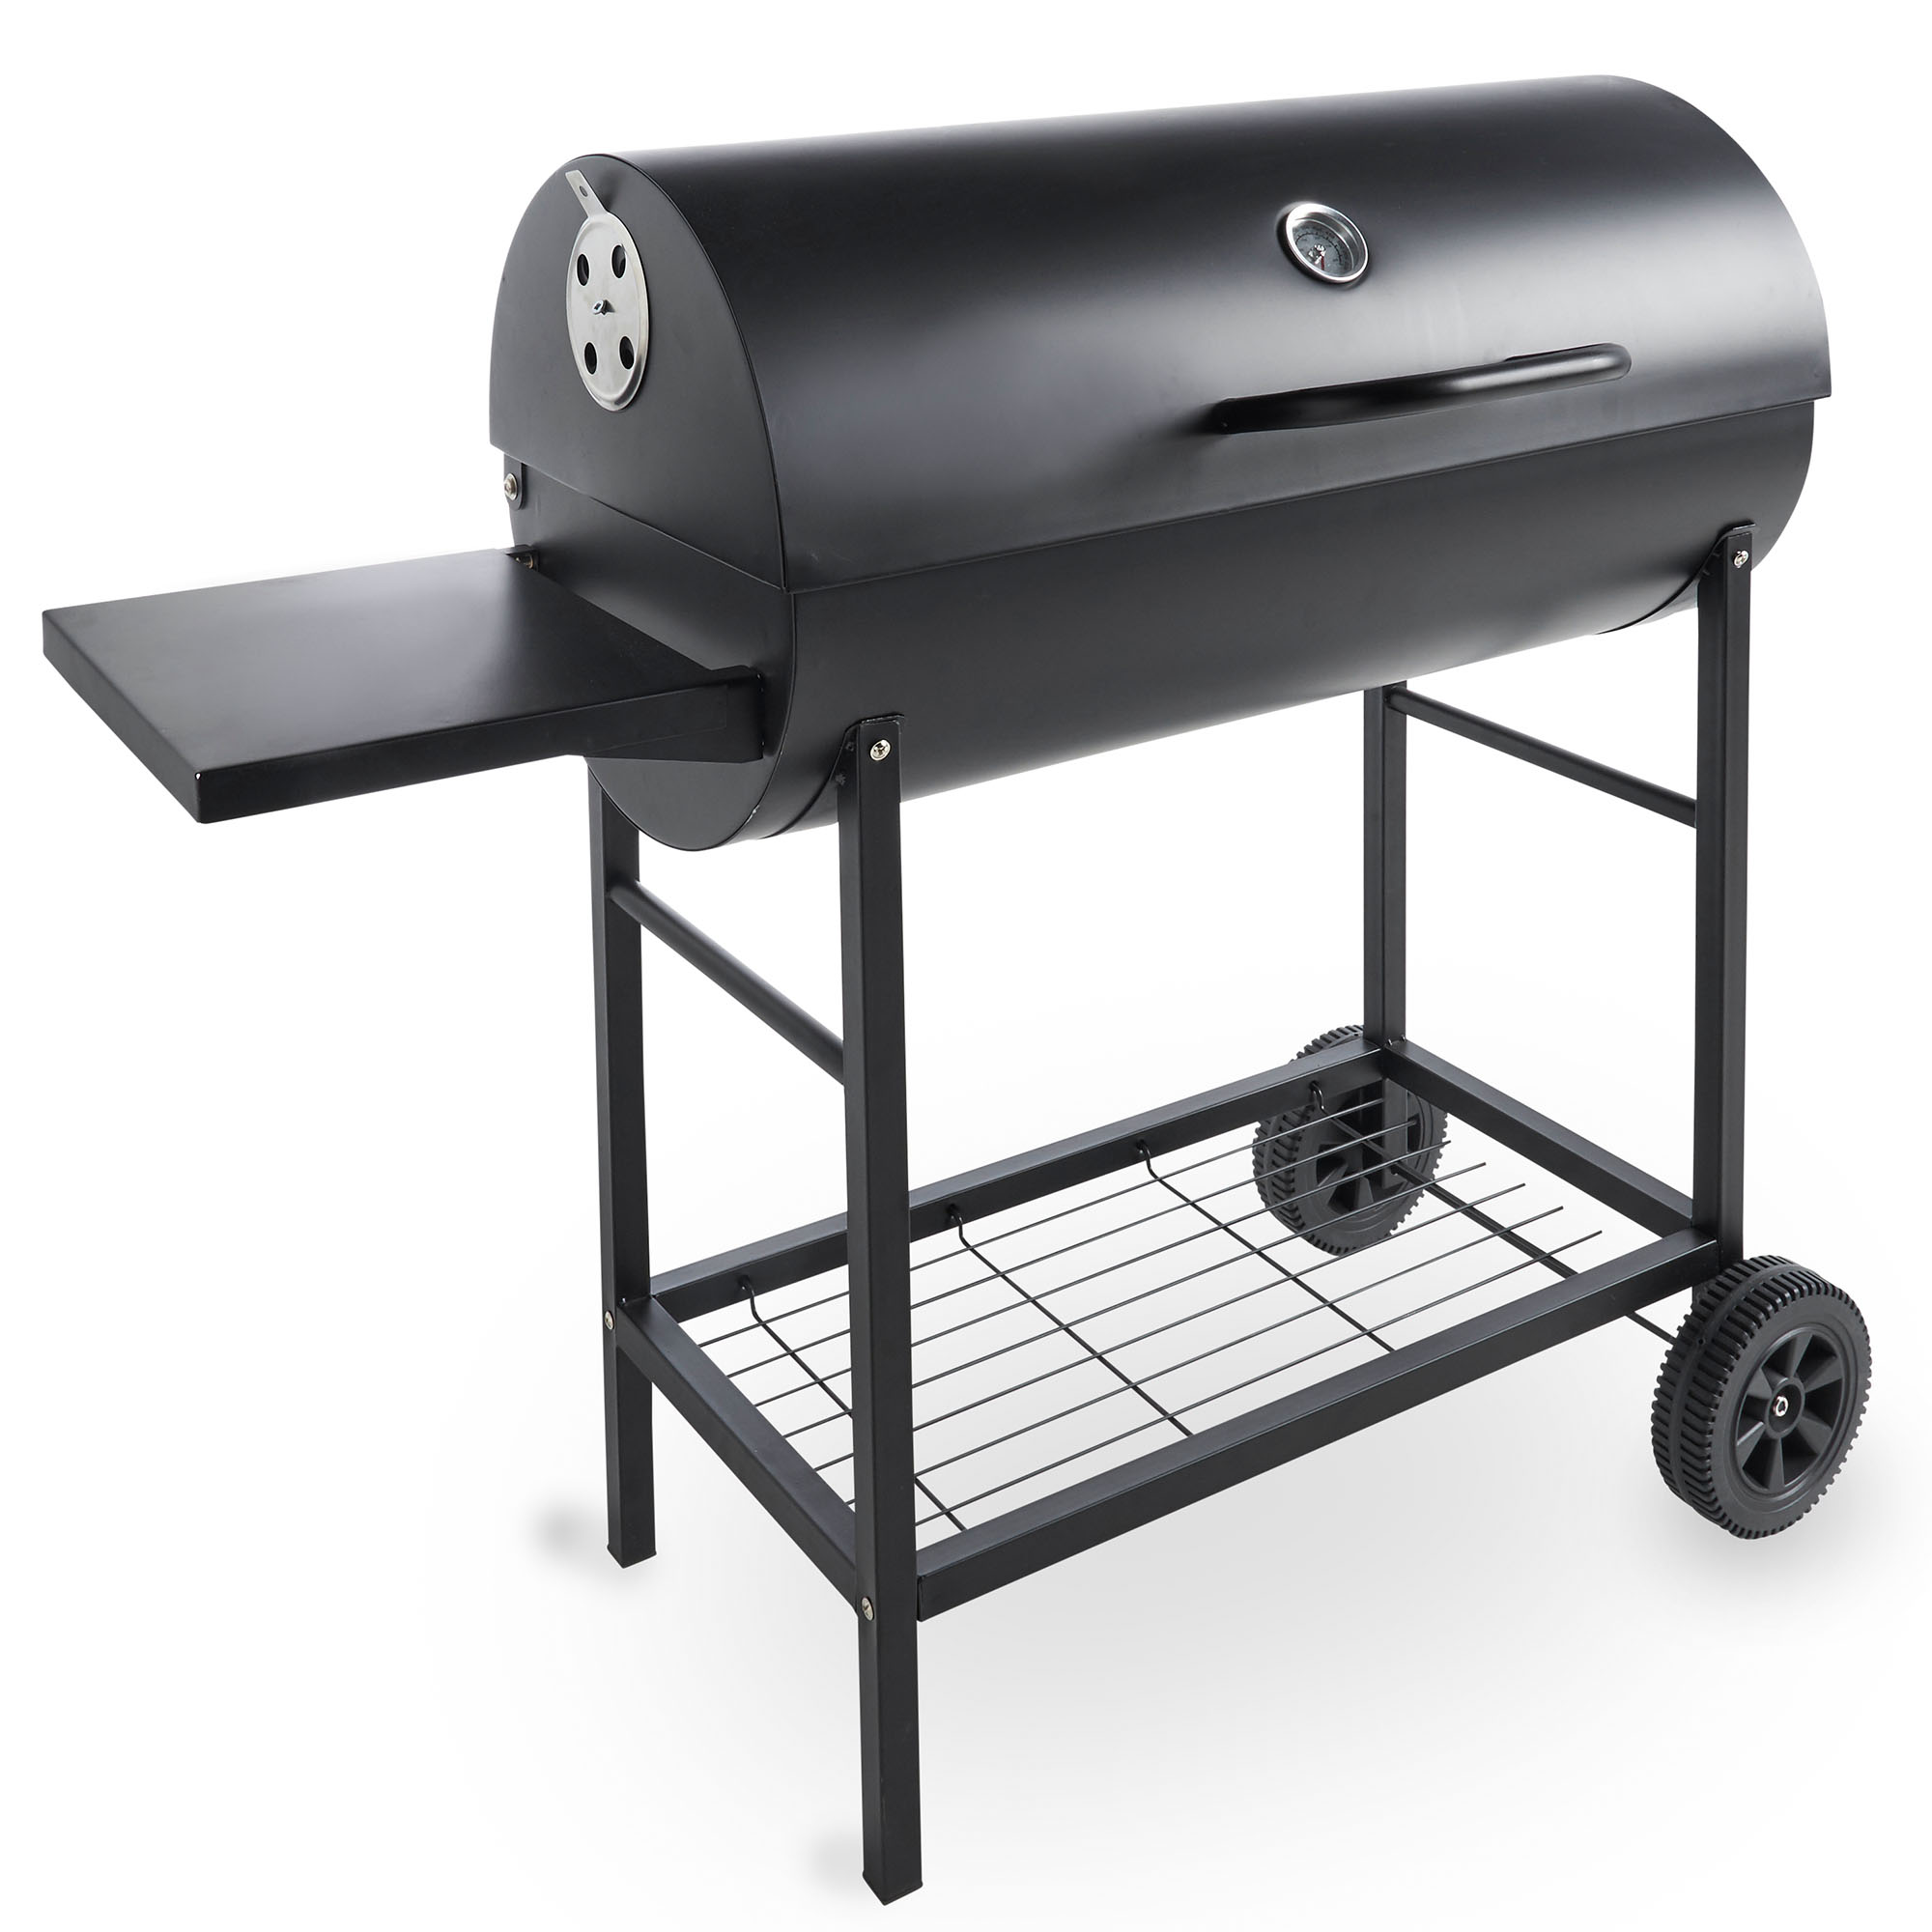 vonhaus 105cm charcoal barrel bbq with side table garden patio smoker grill ebay. Black Bedroom Furniture Sets. Home Design Ideas